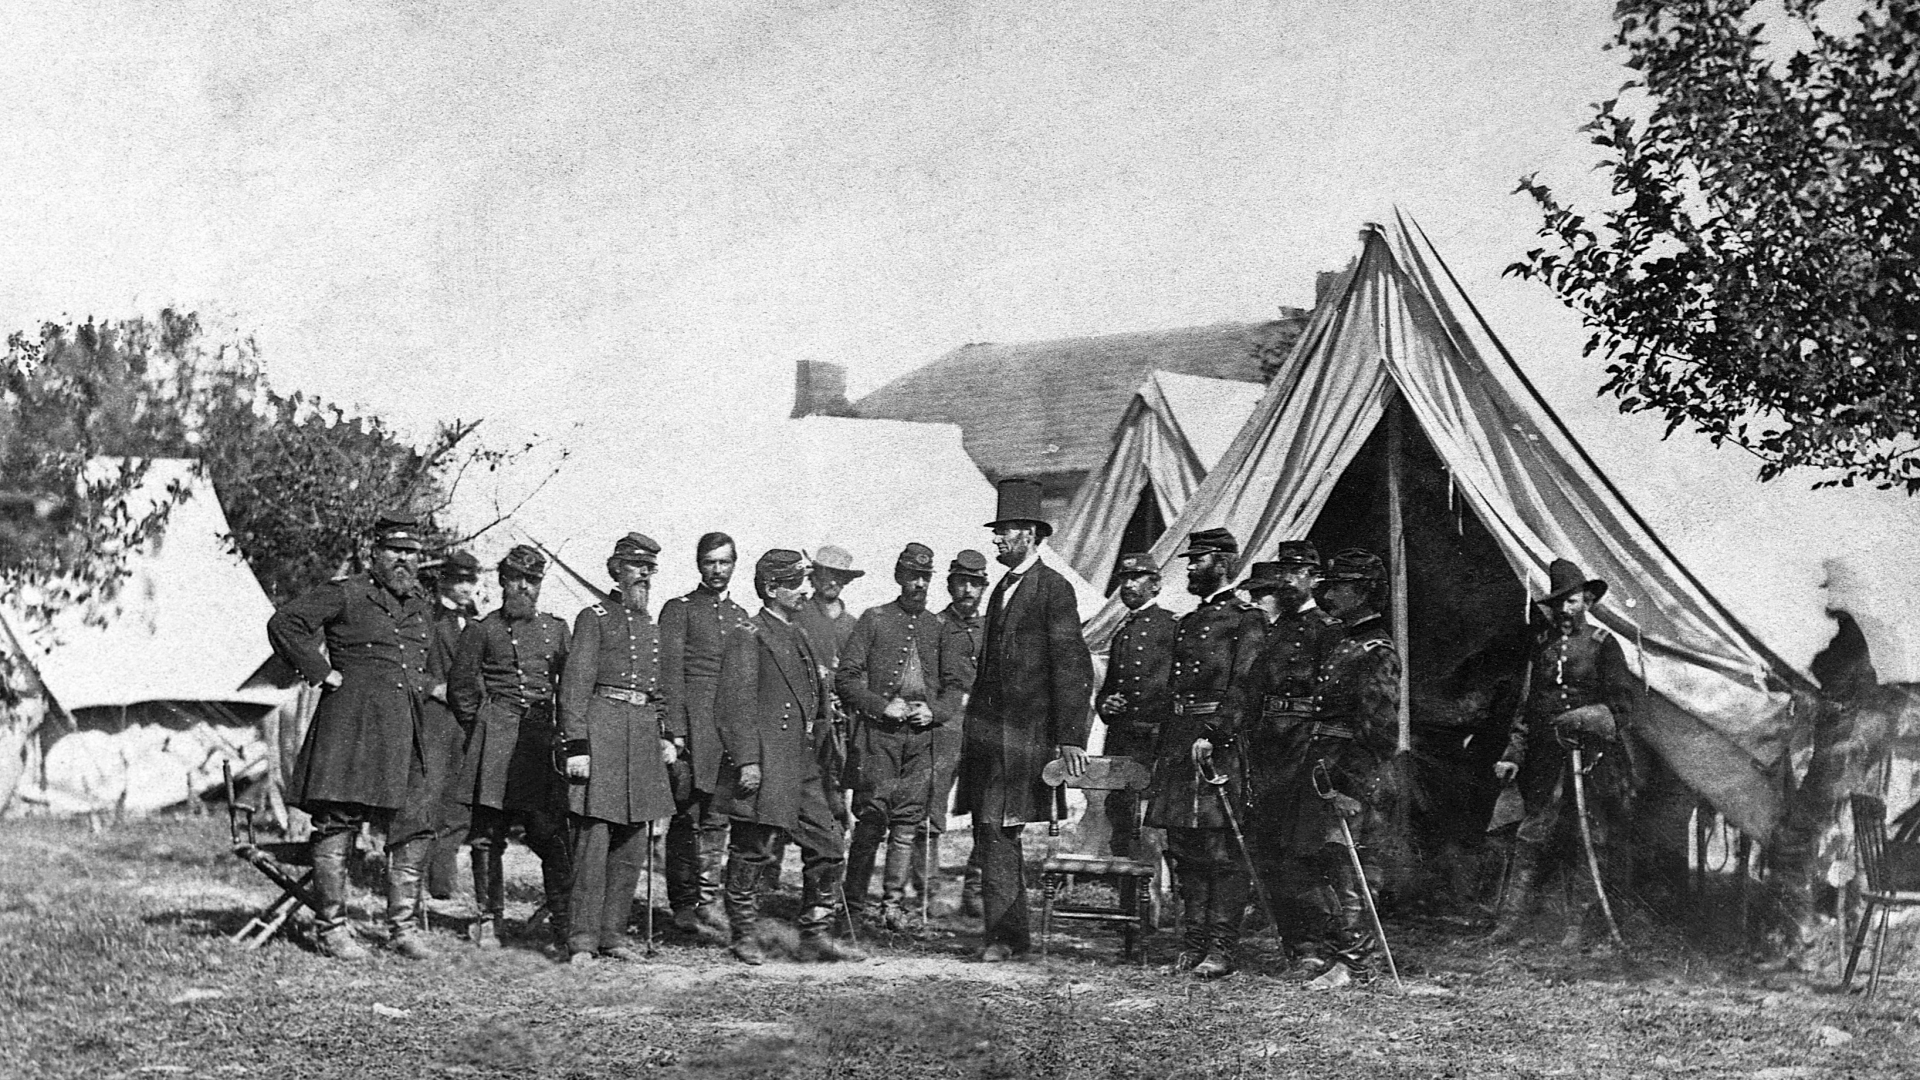 President Lincoln meets with soldiers and military officers of the Union Army on the battlefield of Antietam, Maryland, 1862. (Credit: Corbis/Getty Images)